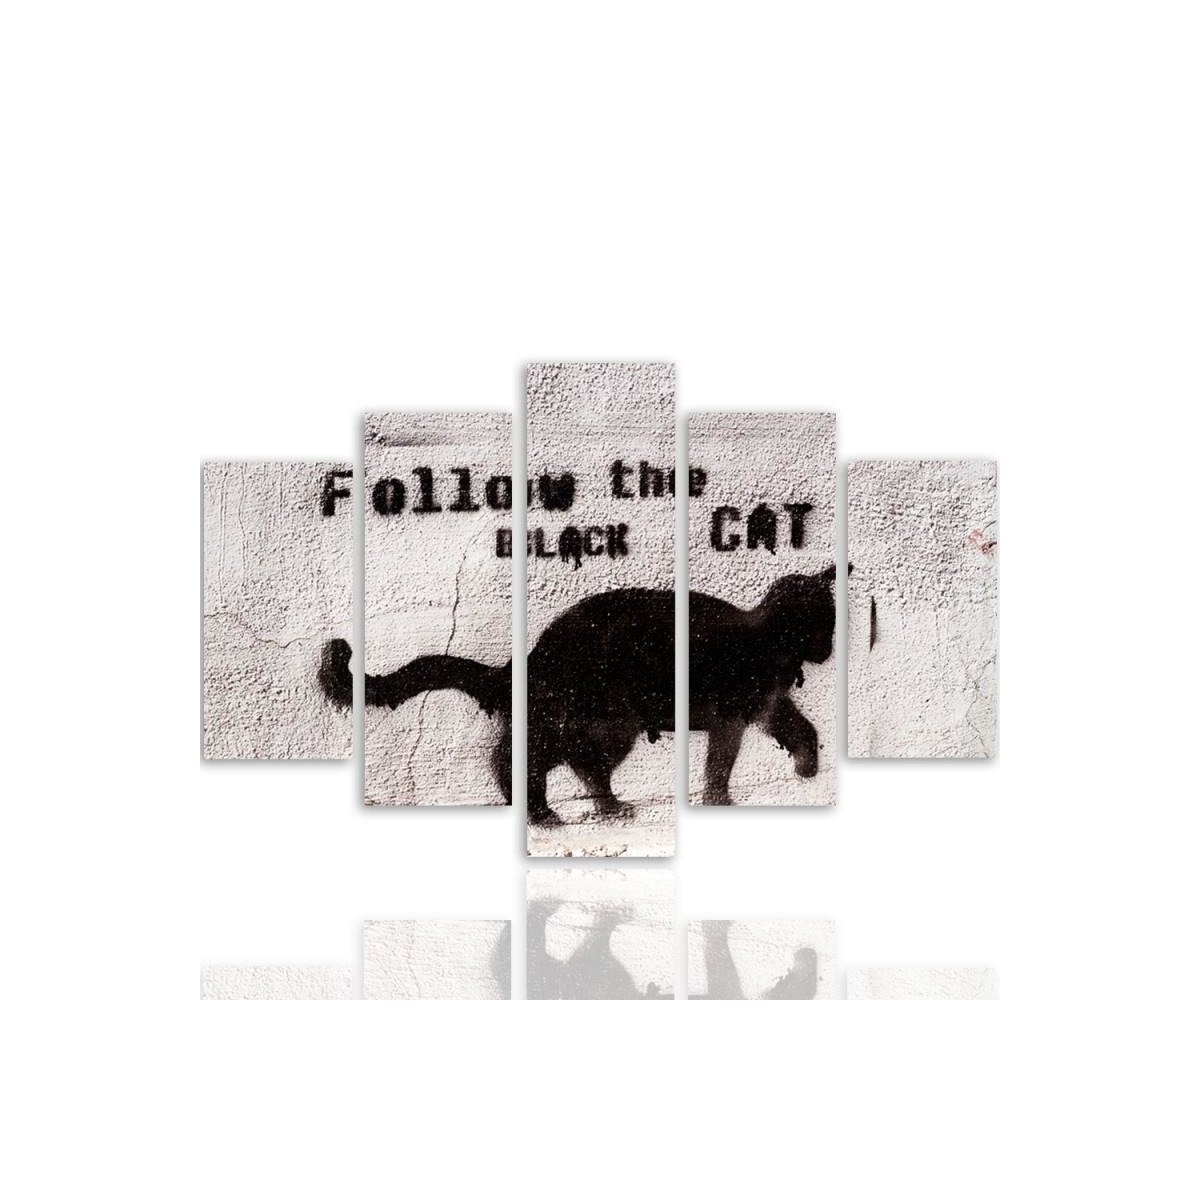 Five Part Picture On Canvas, Pentaptych, Type A, Black Cat 100x150